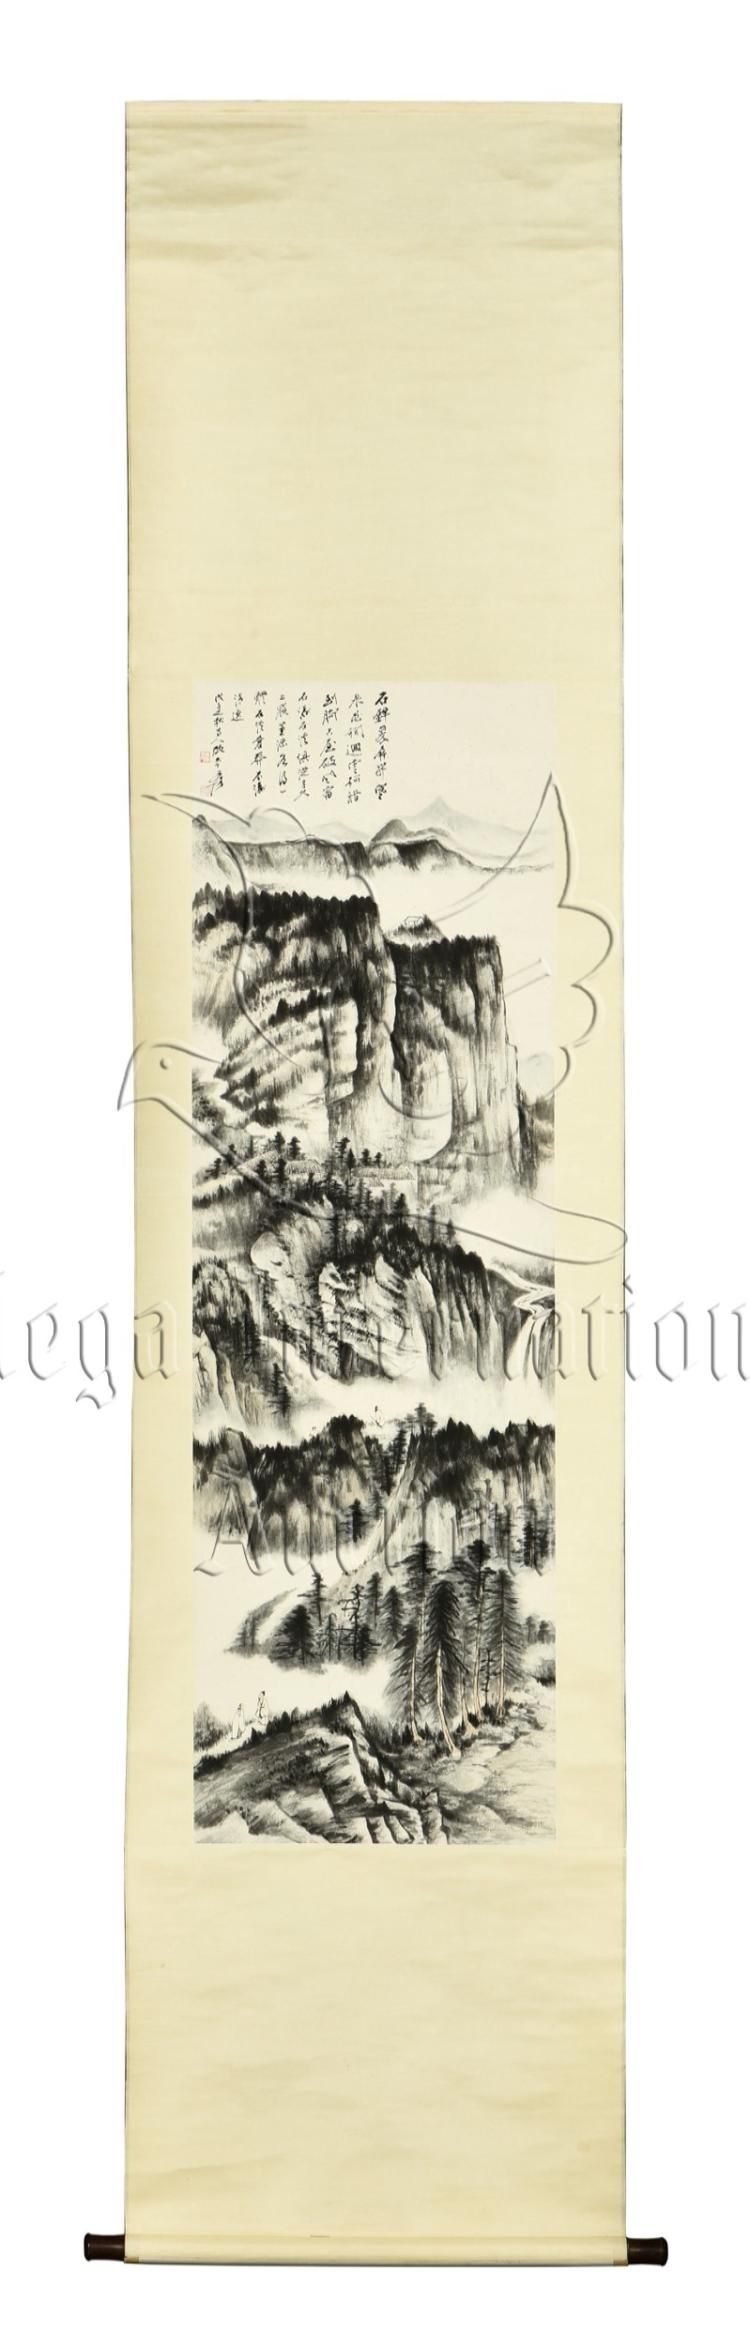 ZHANG DAQIAN: INK ON PAPER PAINTING 'MOUNTAIN LANDSCAPE'